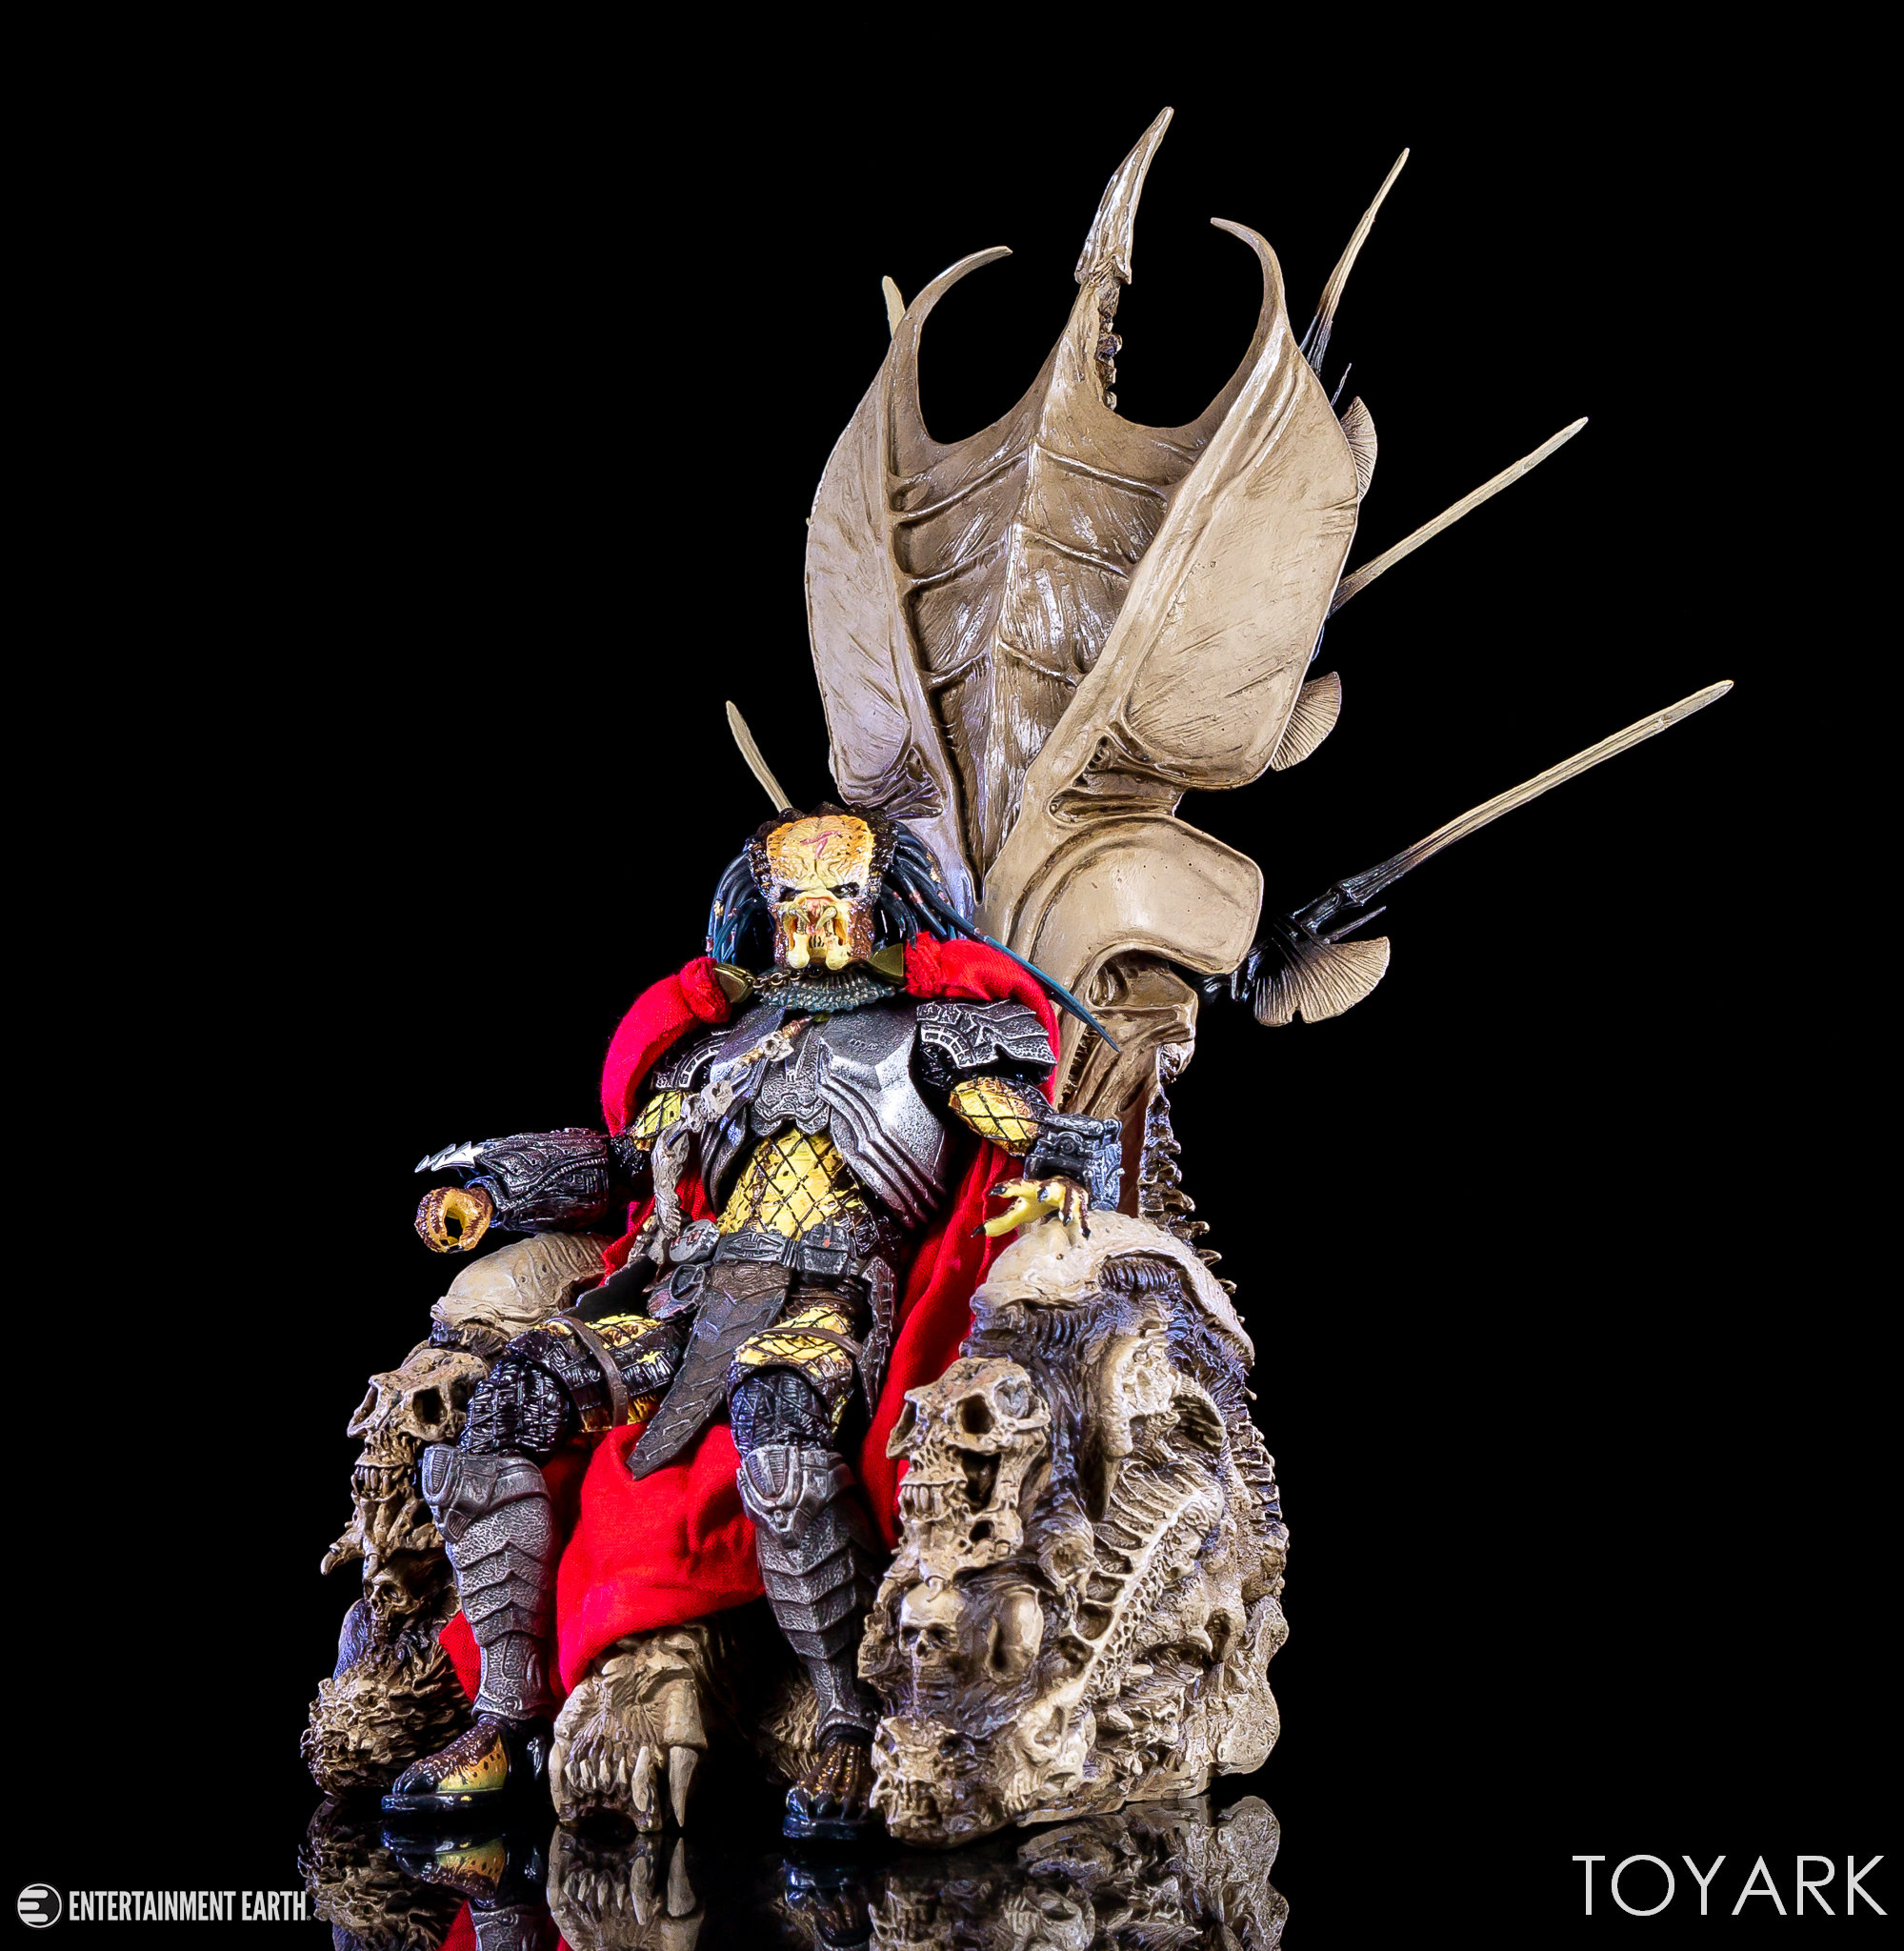 https://news.toyark.com/wp-content/uploads/sites/4/2018/05/NECA-Predator-Throne-029.jpg